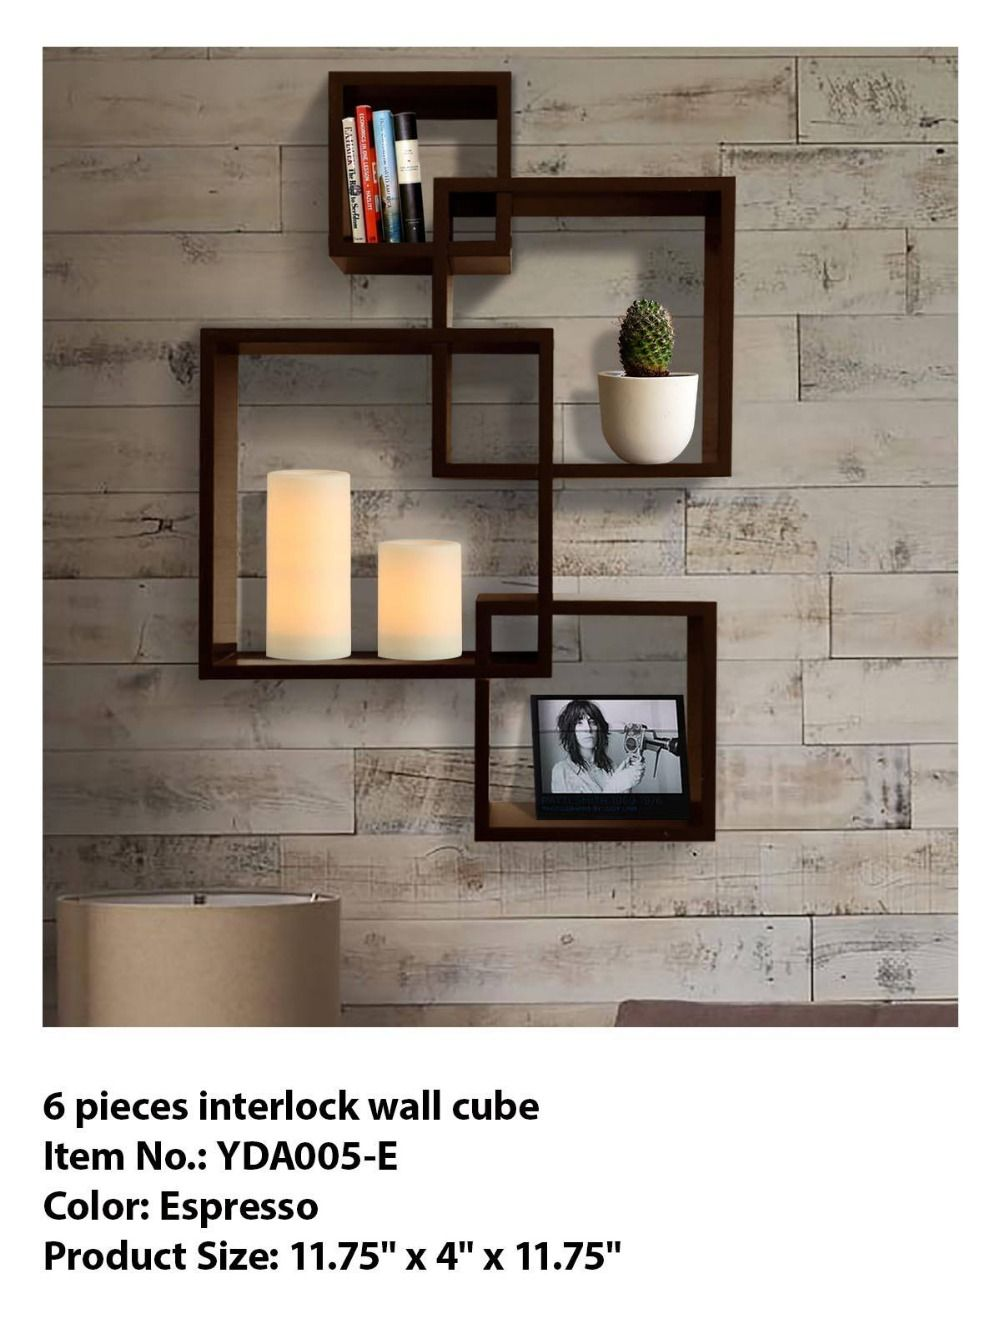 6 pieces interlock wall cube decorative wooden wall cubes cube wall rh pinterest com Unique Decorative Shelf decorative wood wall shelves